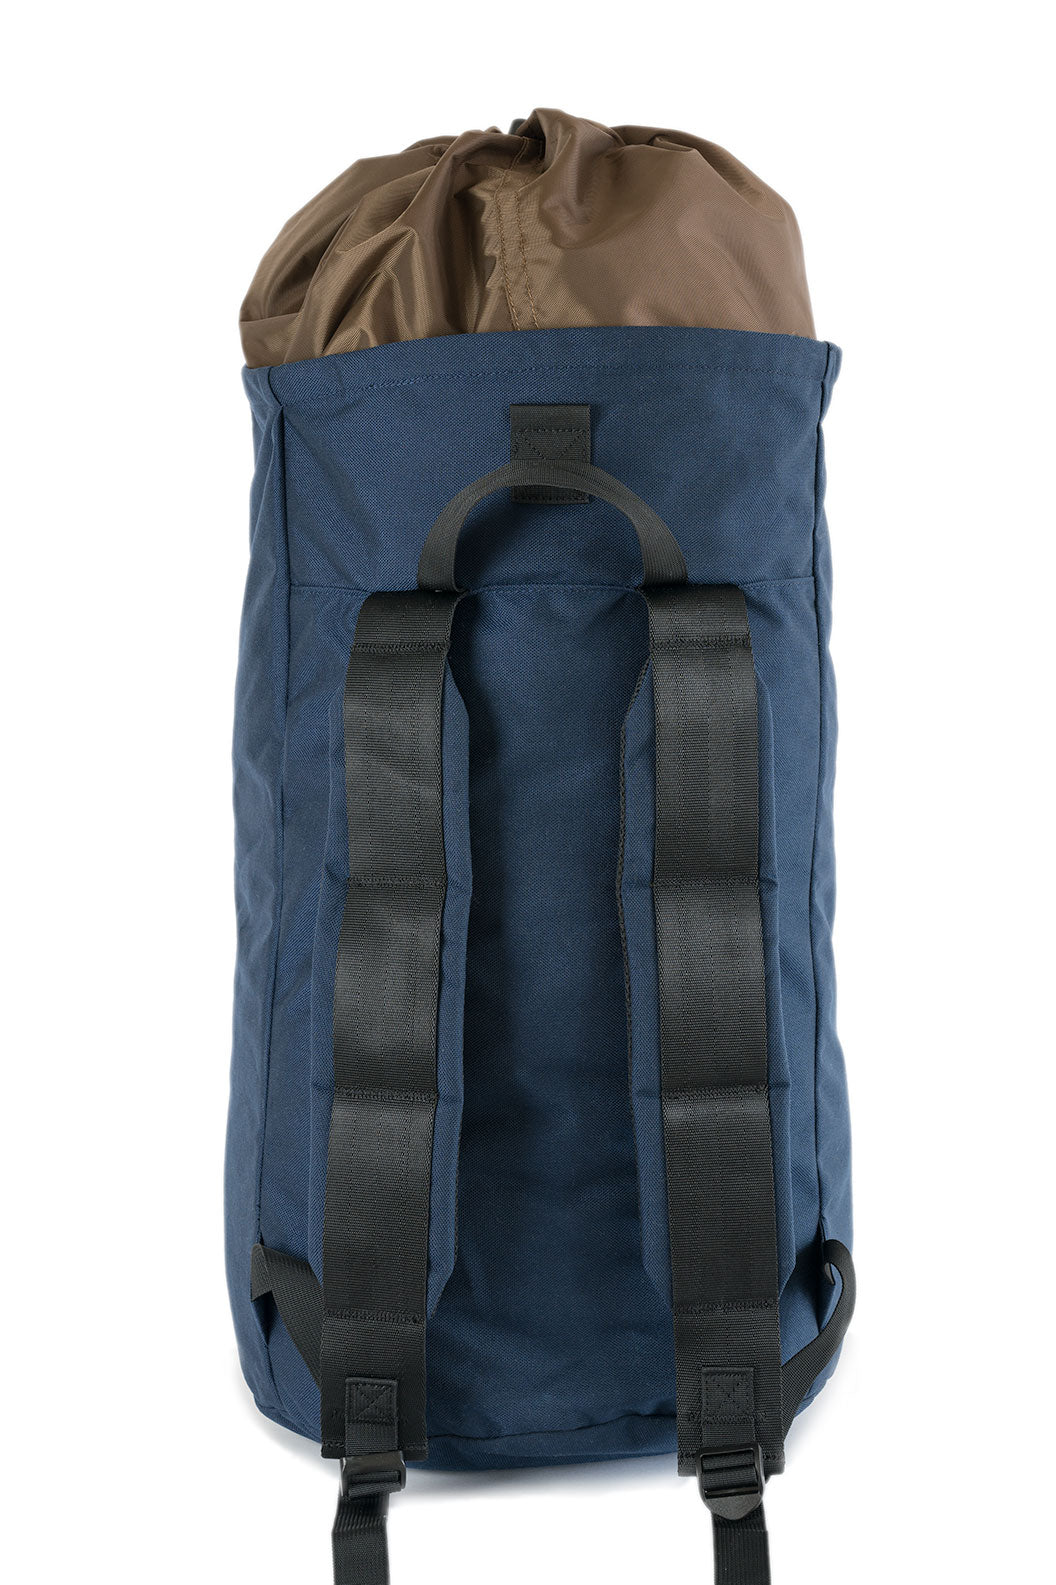 The Mini ChipmunkBag | 60 Liter Laundry Backpack Laundry Backpack - The World's Best Laundry Bag